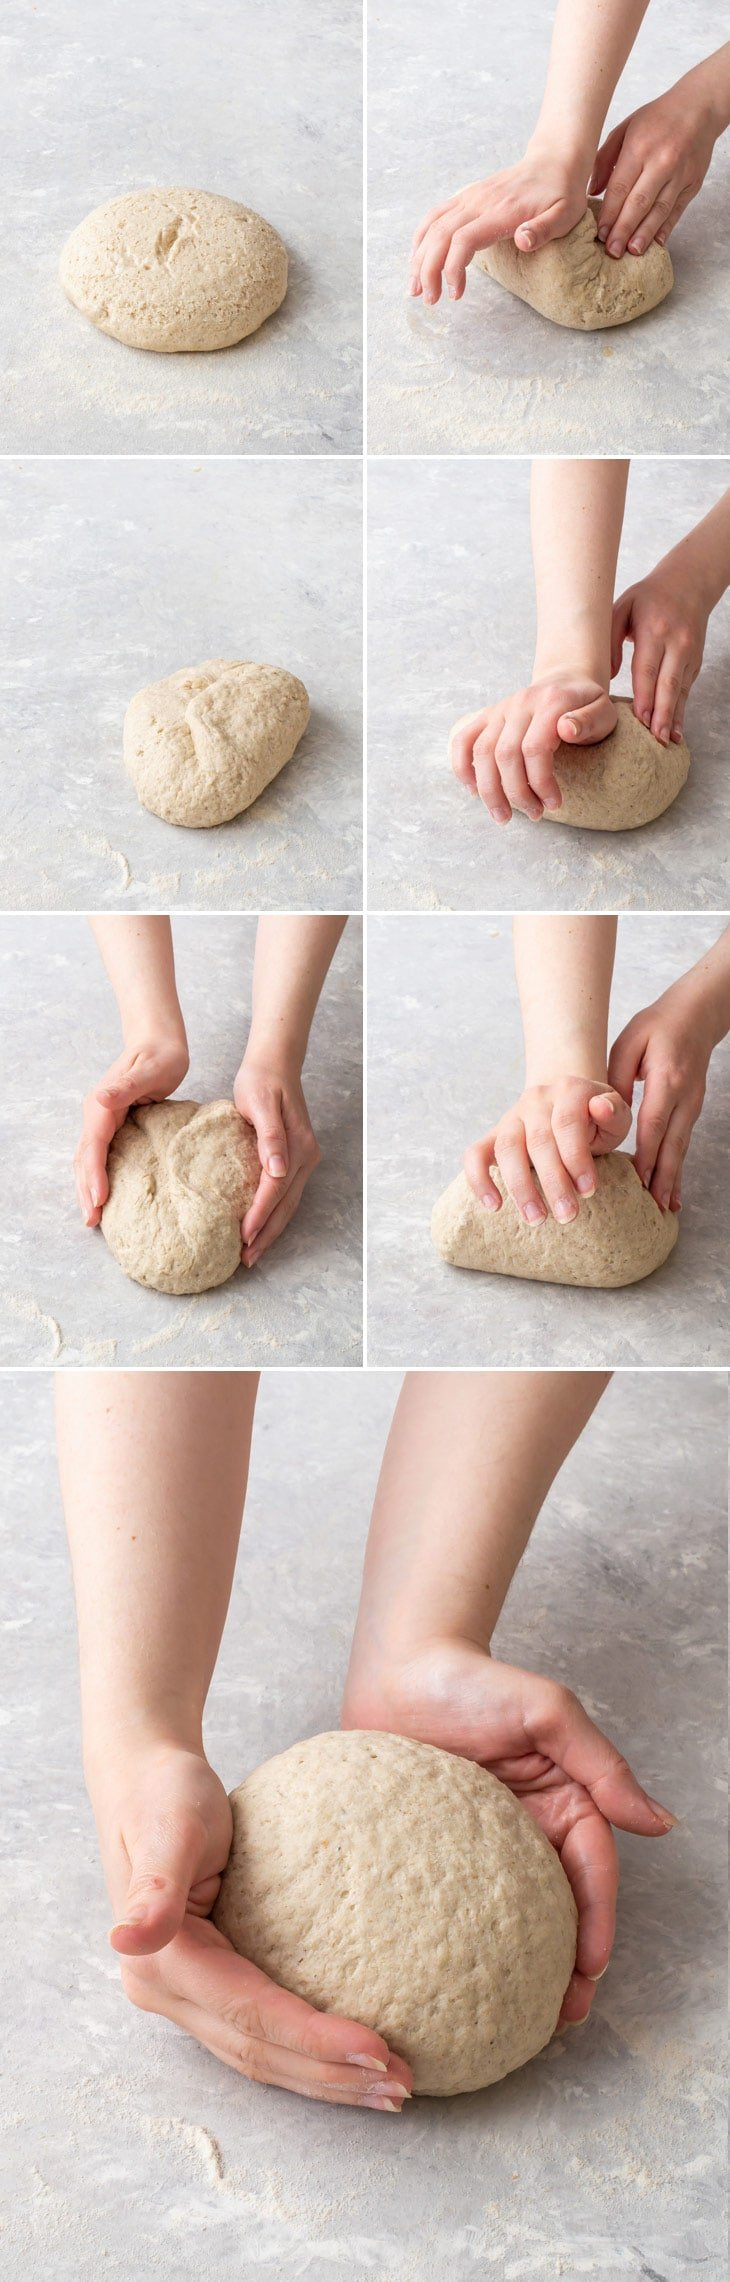 Step-by-step photos of shaping the gluten free bread.